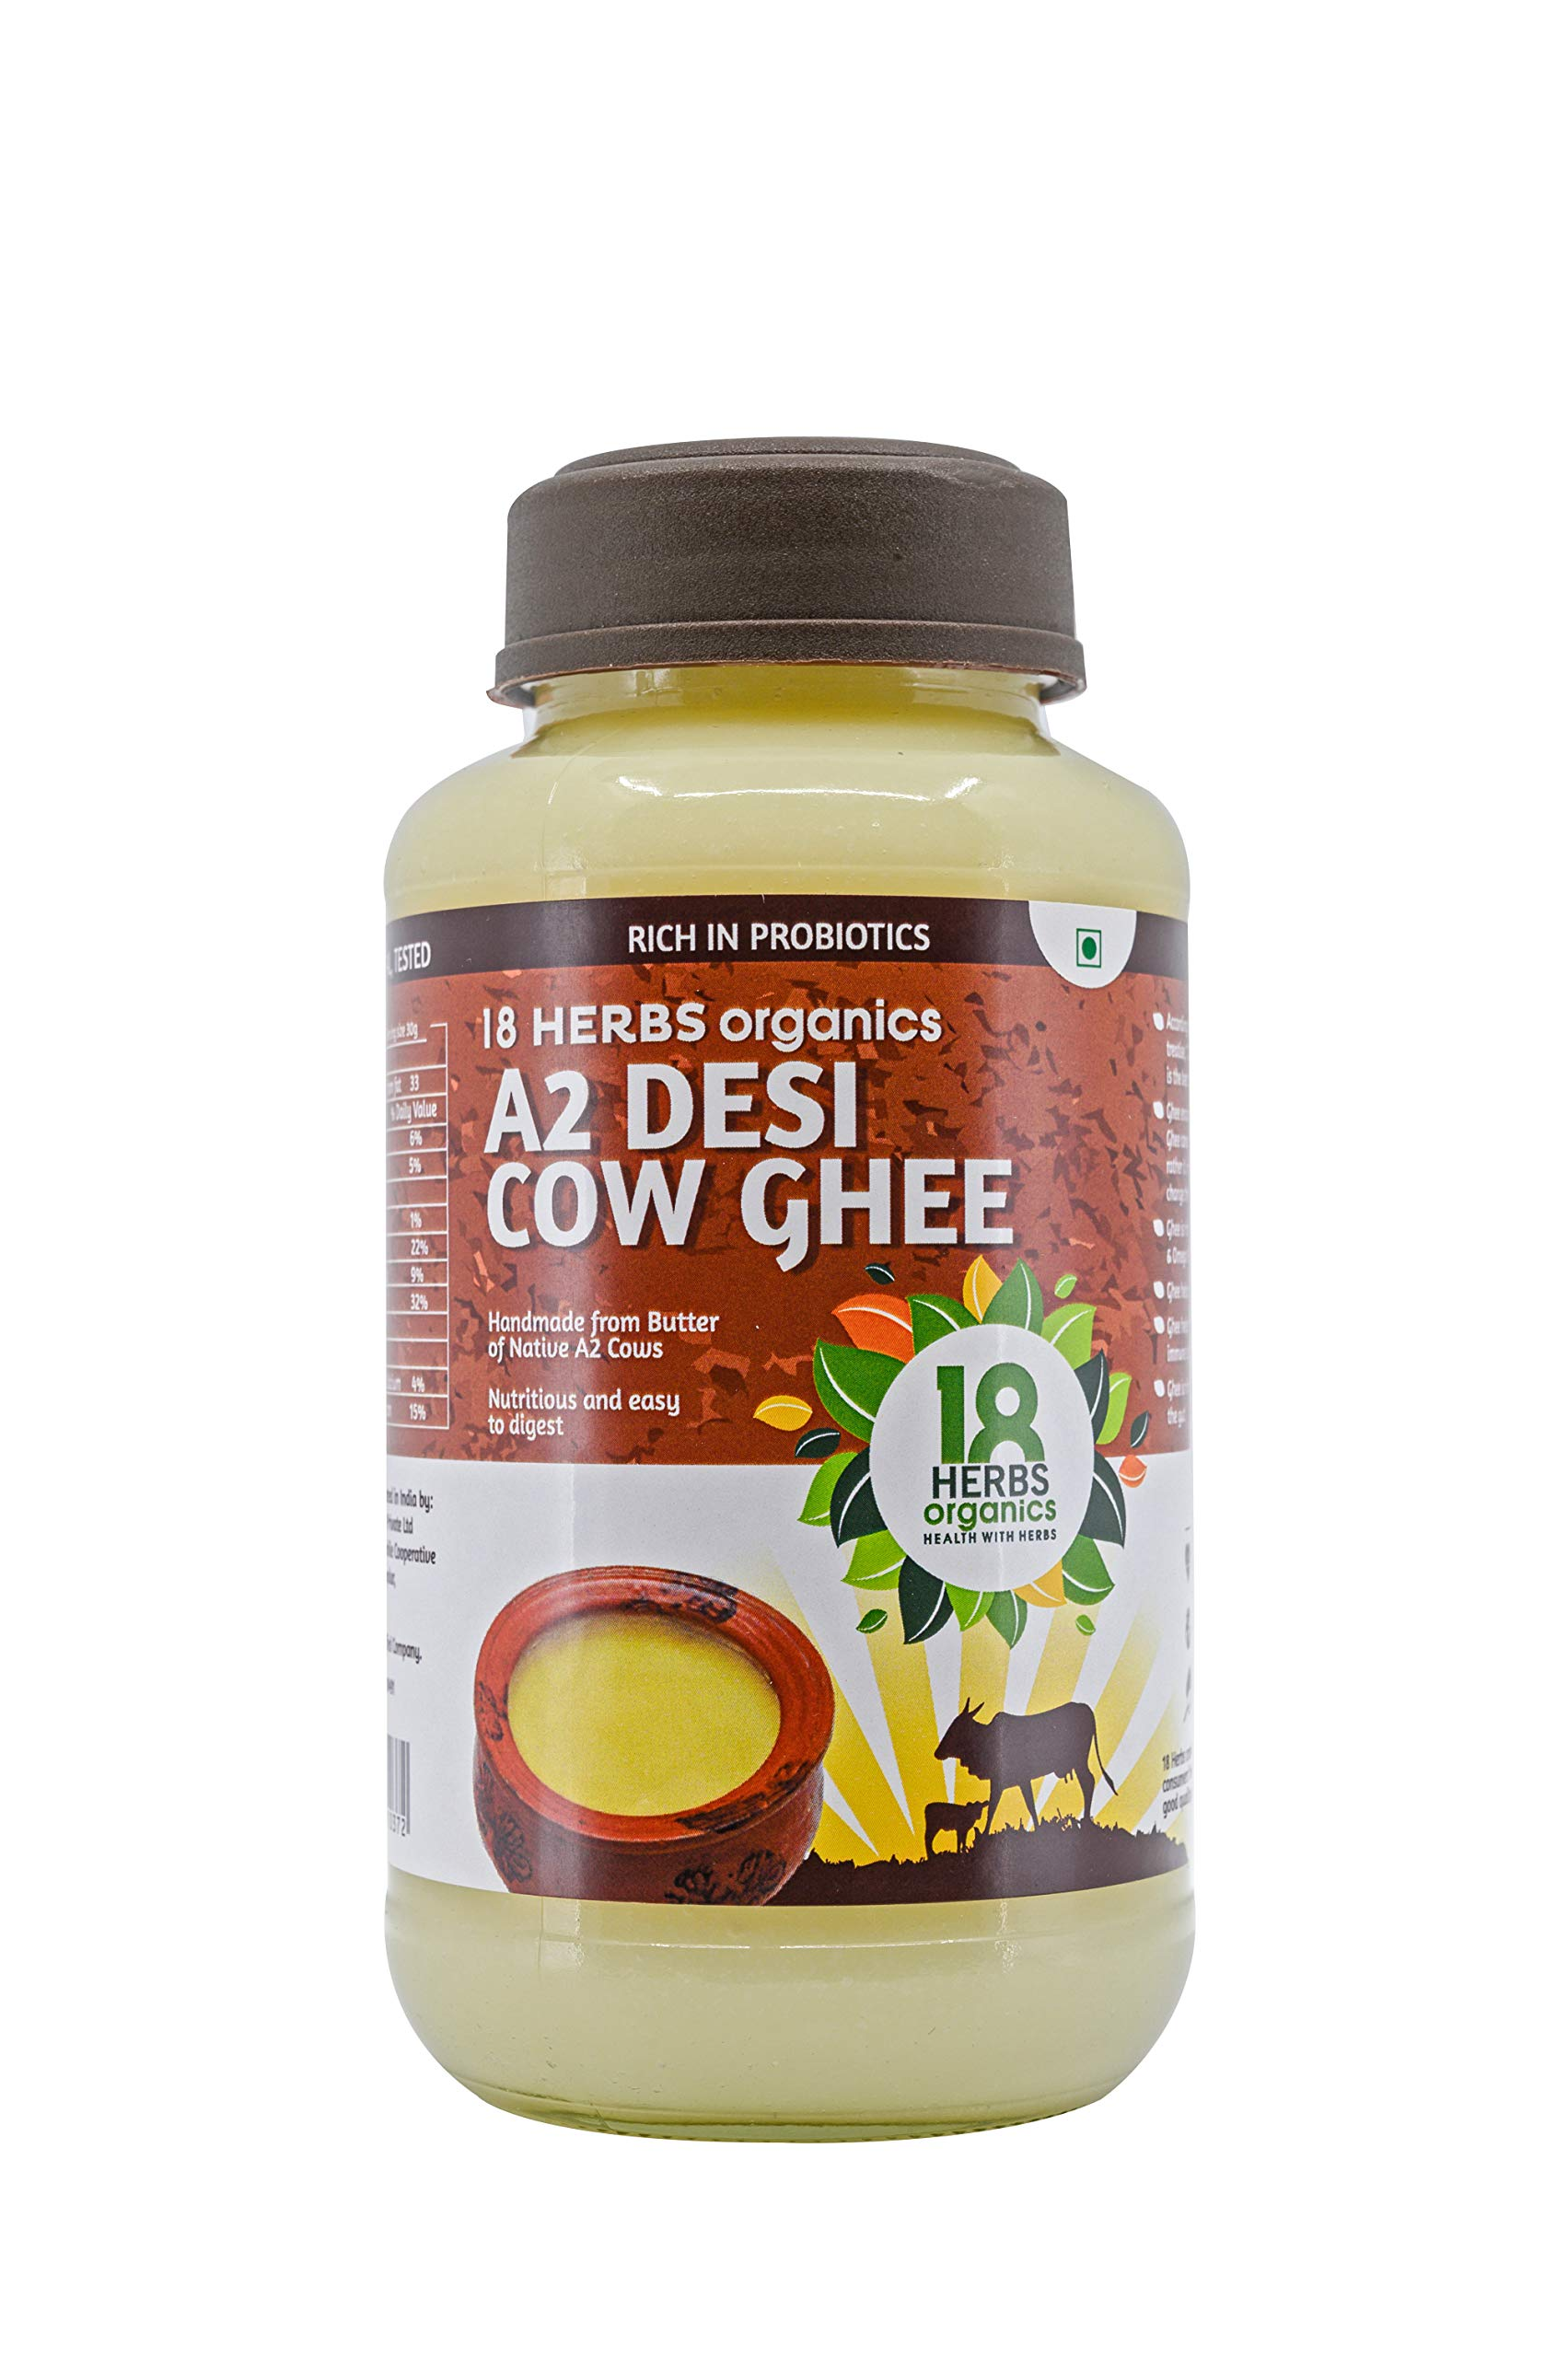 18 Herbs Organics - A2 Desi Cow Ghee - Probiotic Rich - Traditionally Made from Native A2 Cow's Butter - Handmade - 500 ml (B07XWKKJVK) Amazon Price History, Amazon Price Tracker